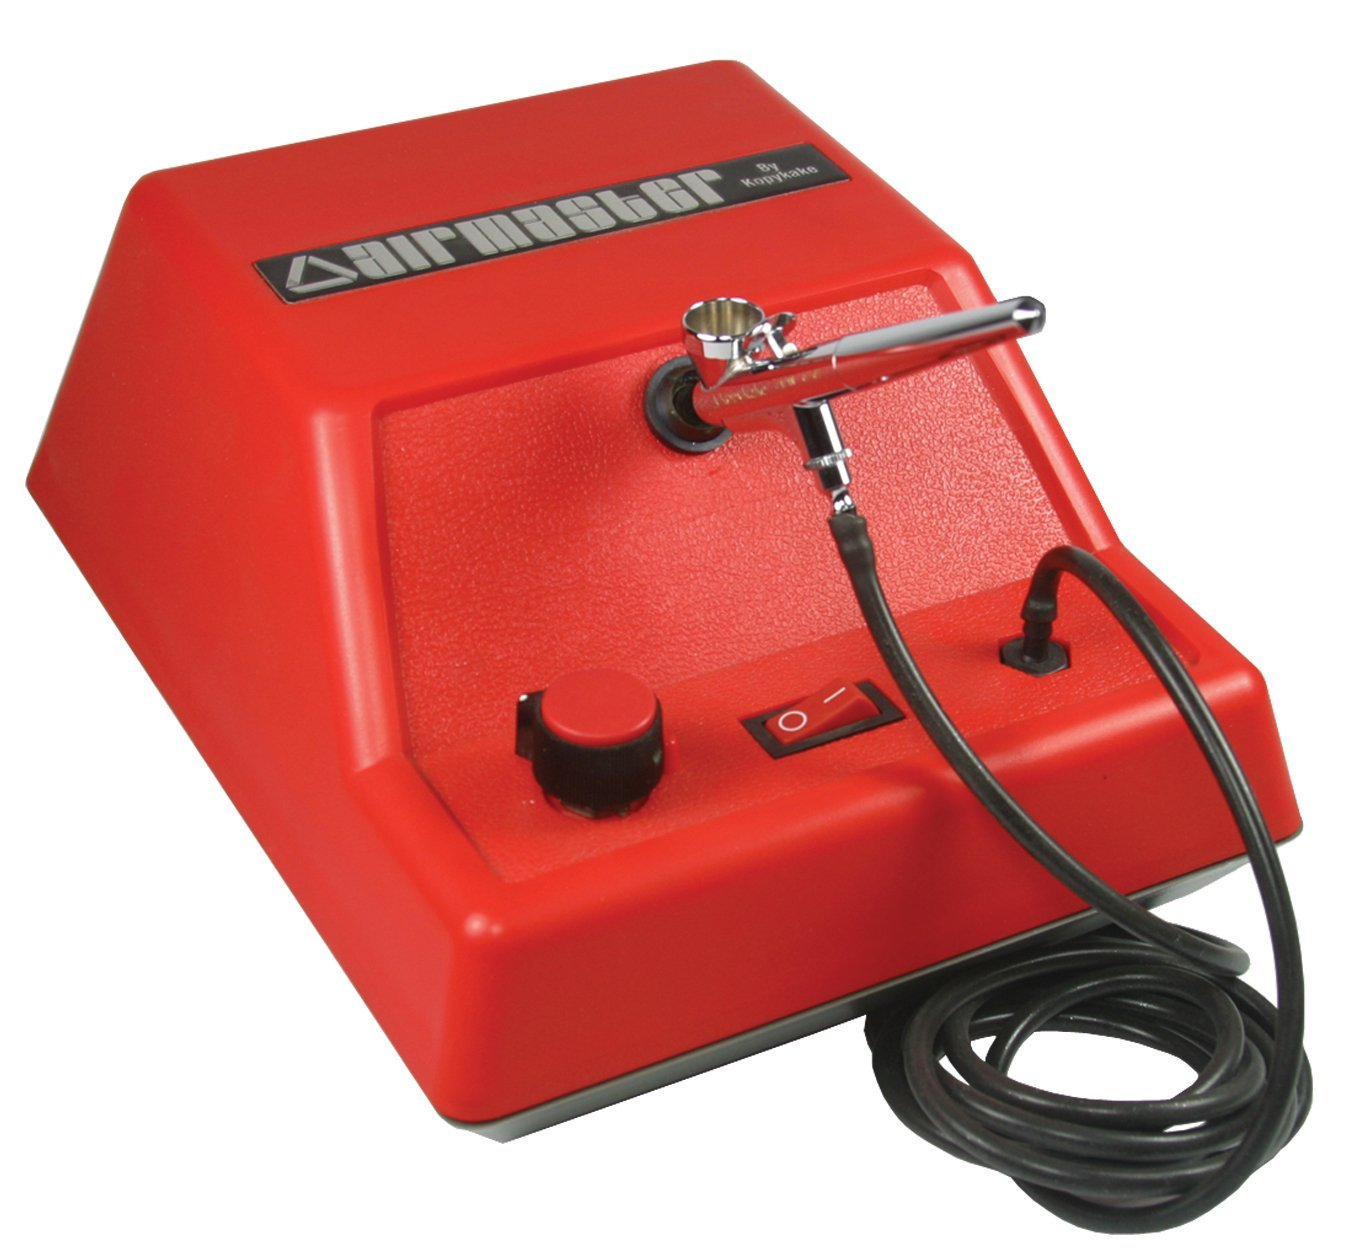 cake airbrush machine reviews